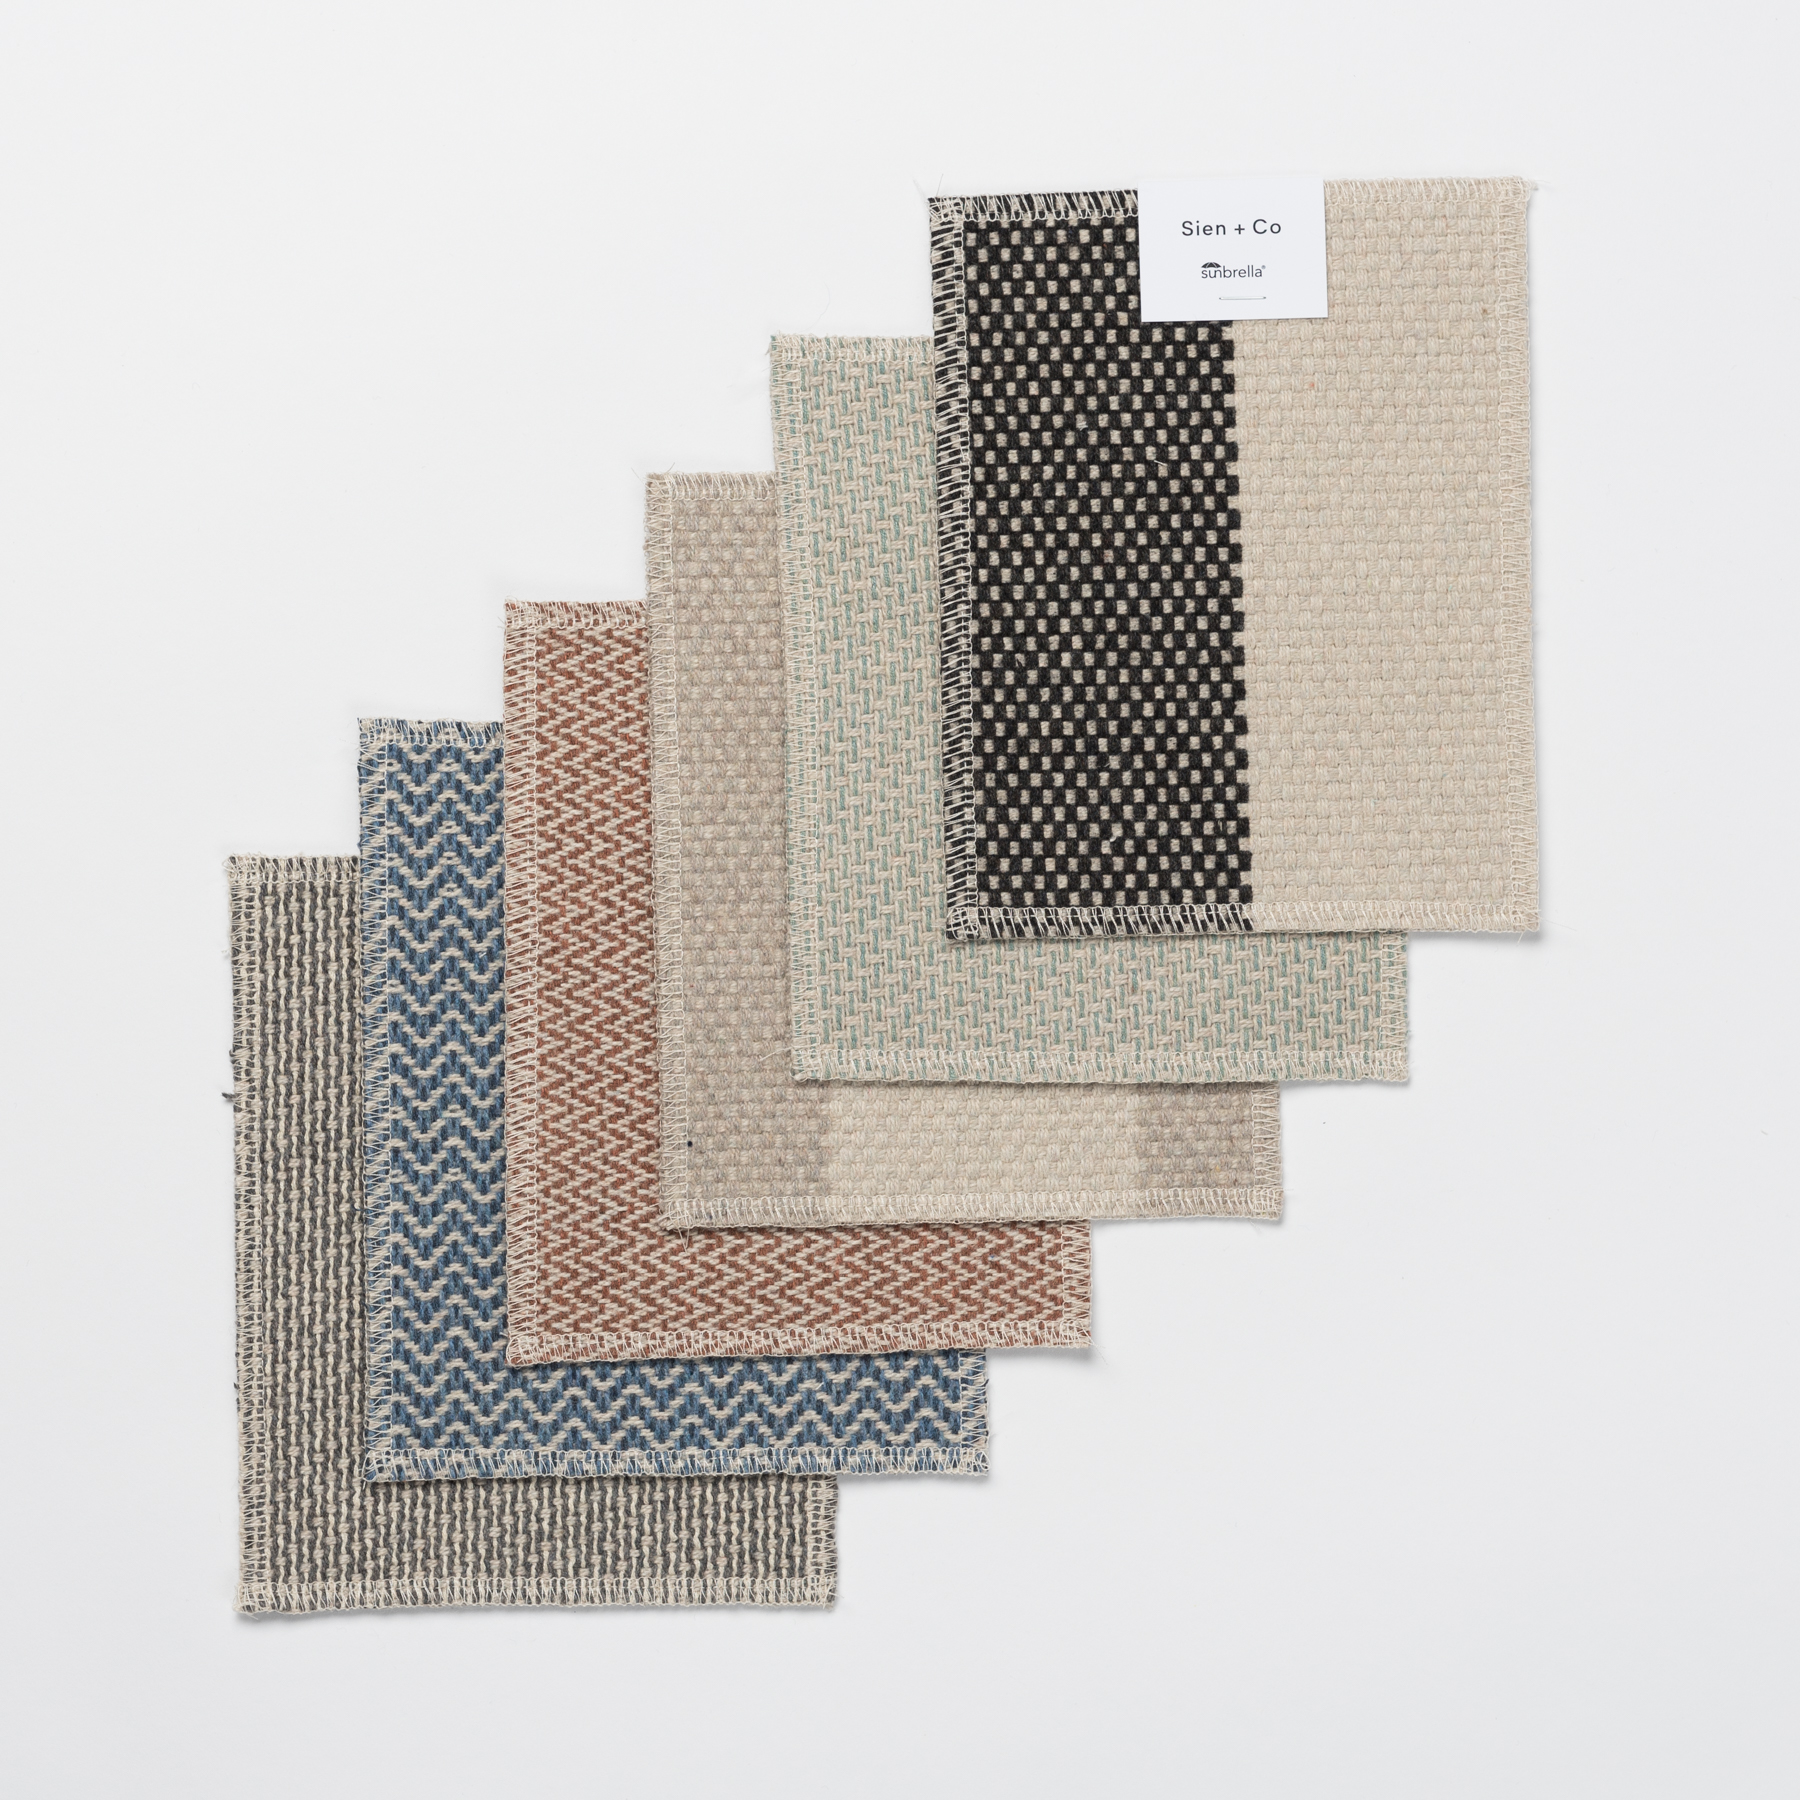 Sien+Co_Kate_Taylor_Collective_Fabrics_3.jpg